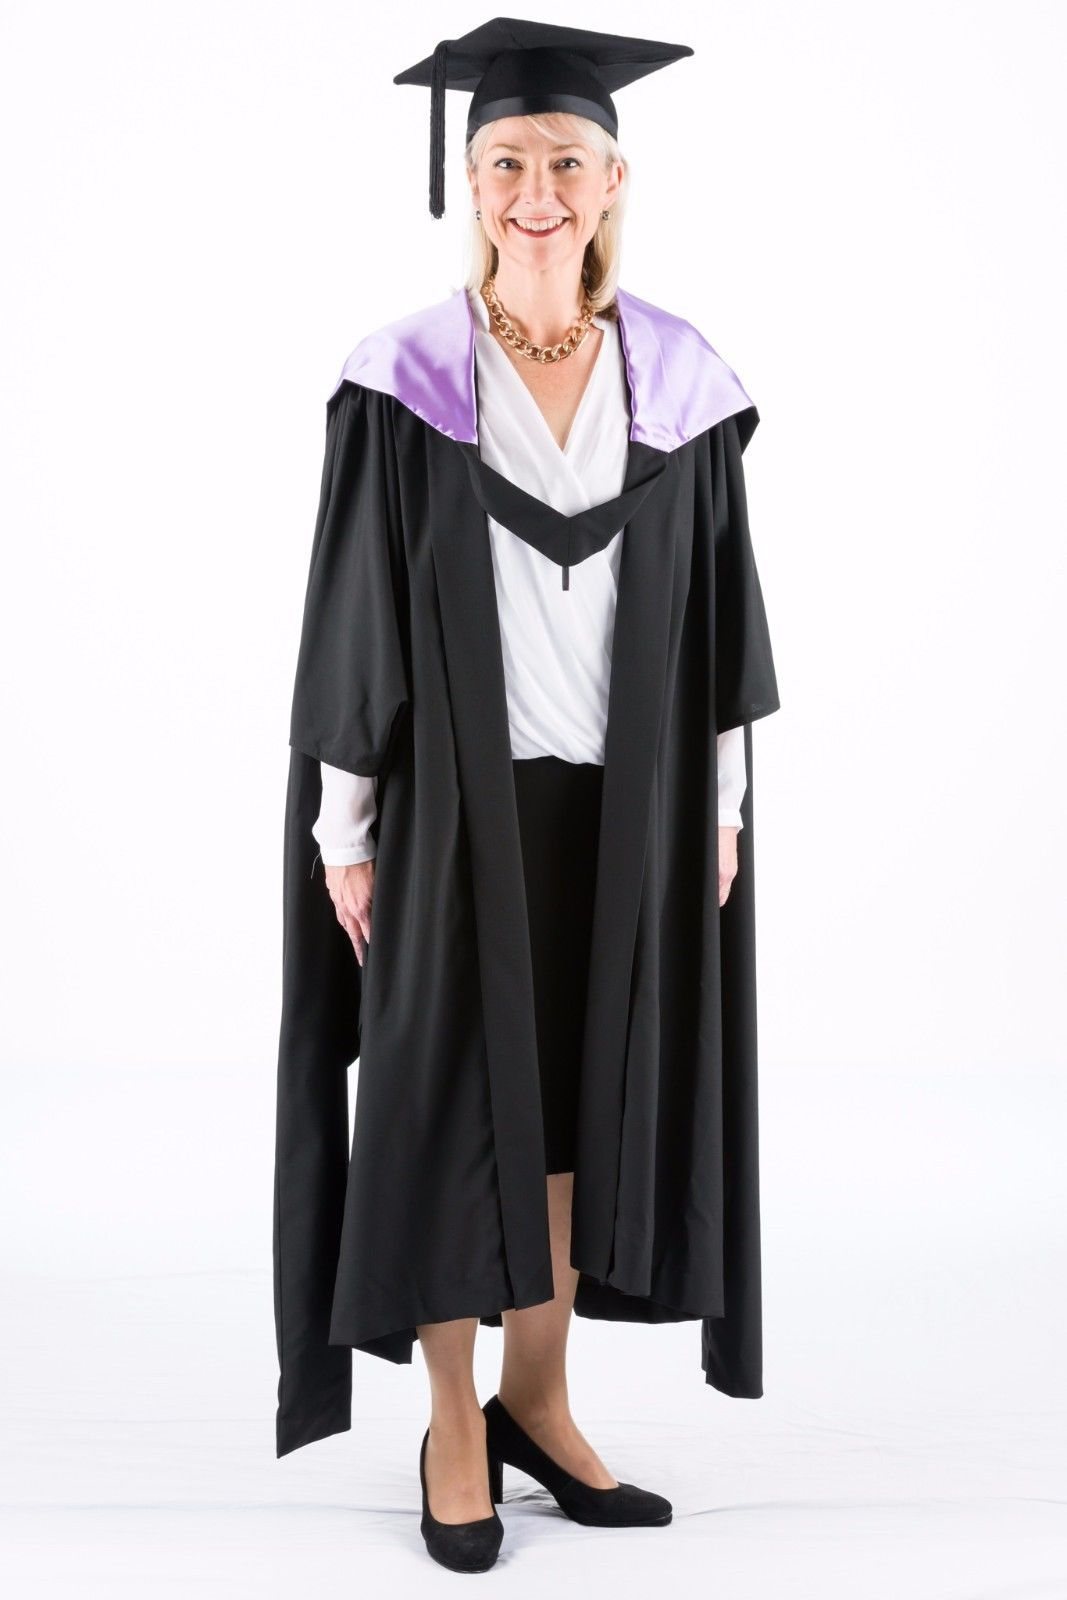 University-Academic-Hood-Graduation-Masters-Fully-Lined-with-Lilac-382202354529